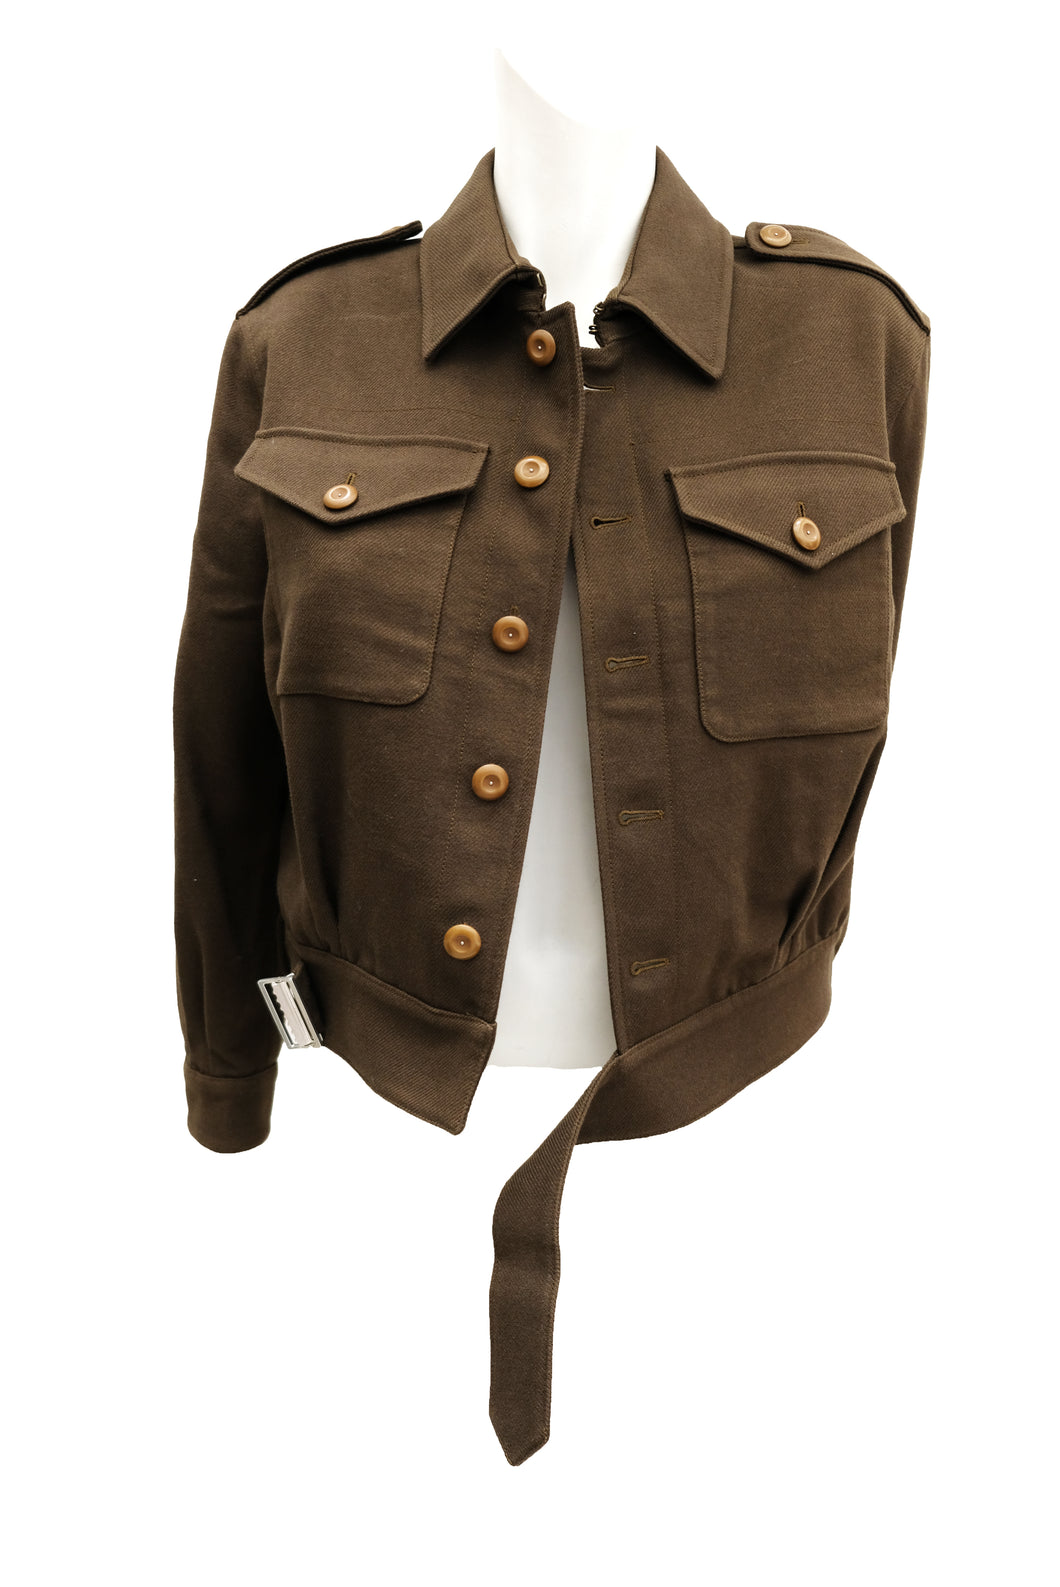 Saint Laurent Army Jacket in Khaki Drill, UK10